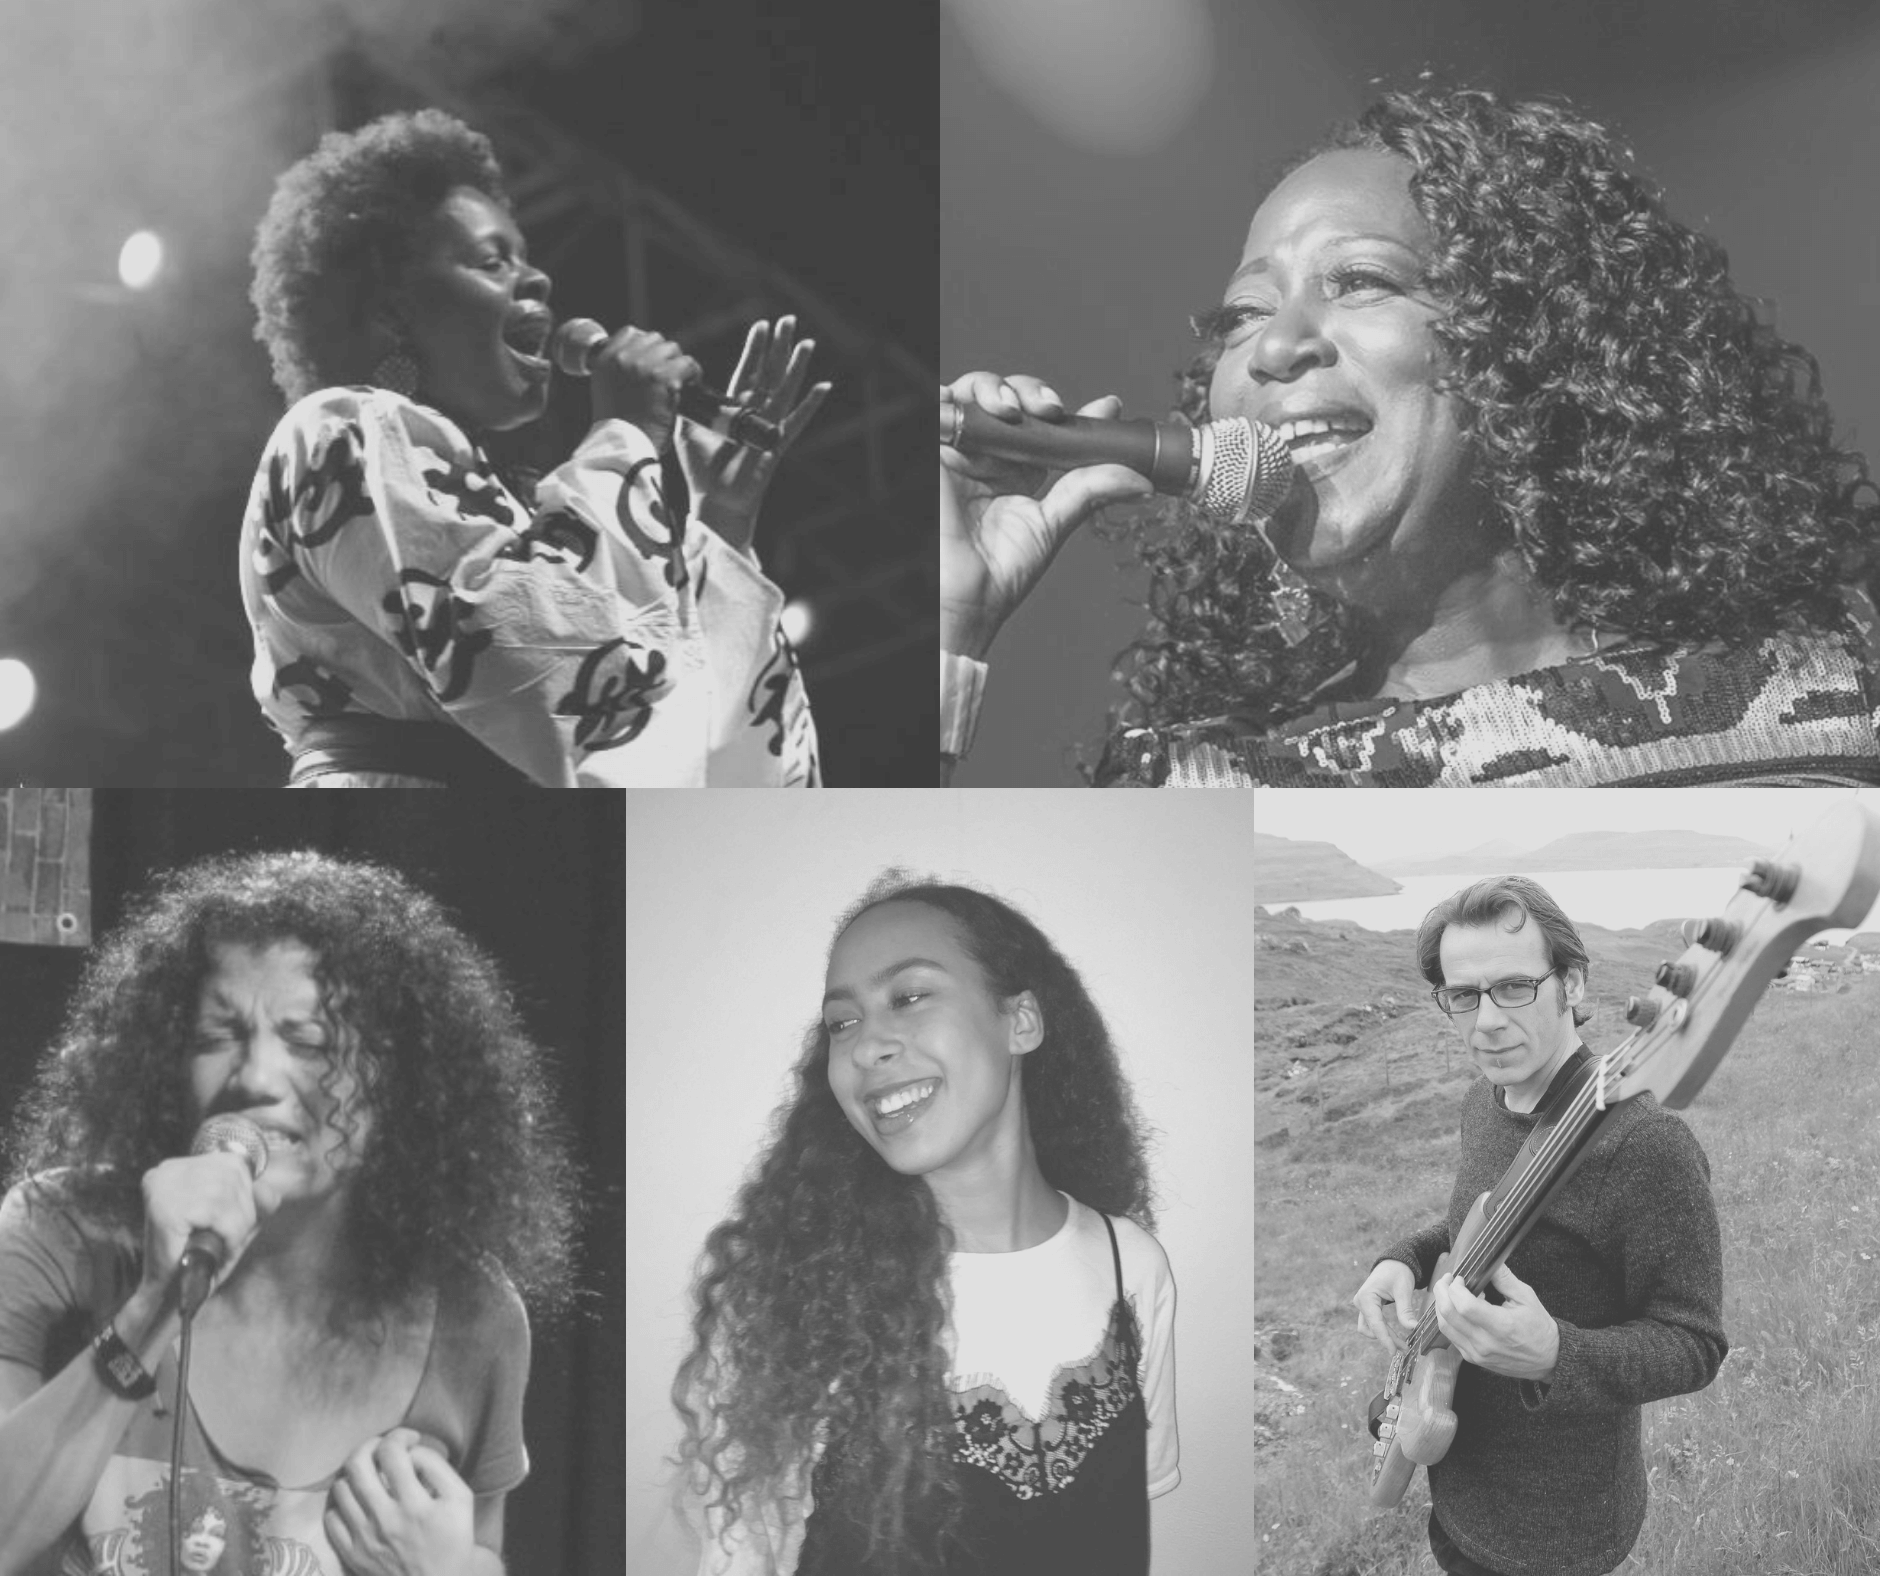 Music for the Soul - a concert of Gospel, Soul, and Funk music